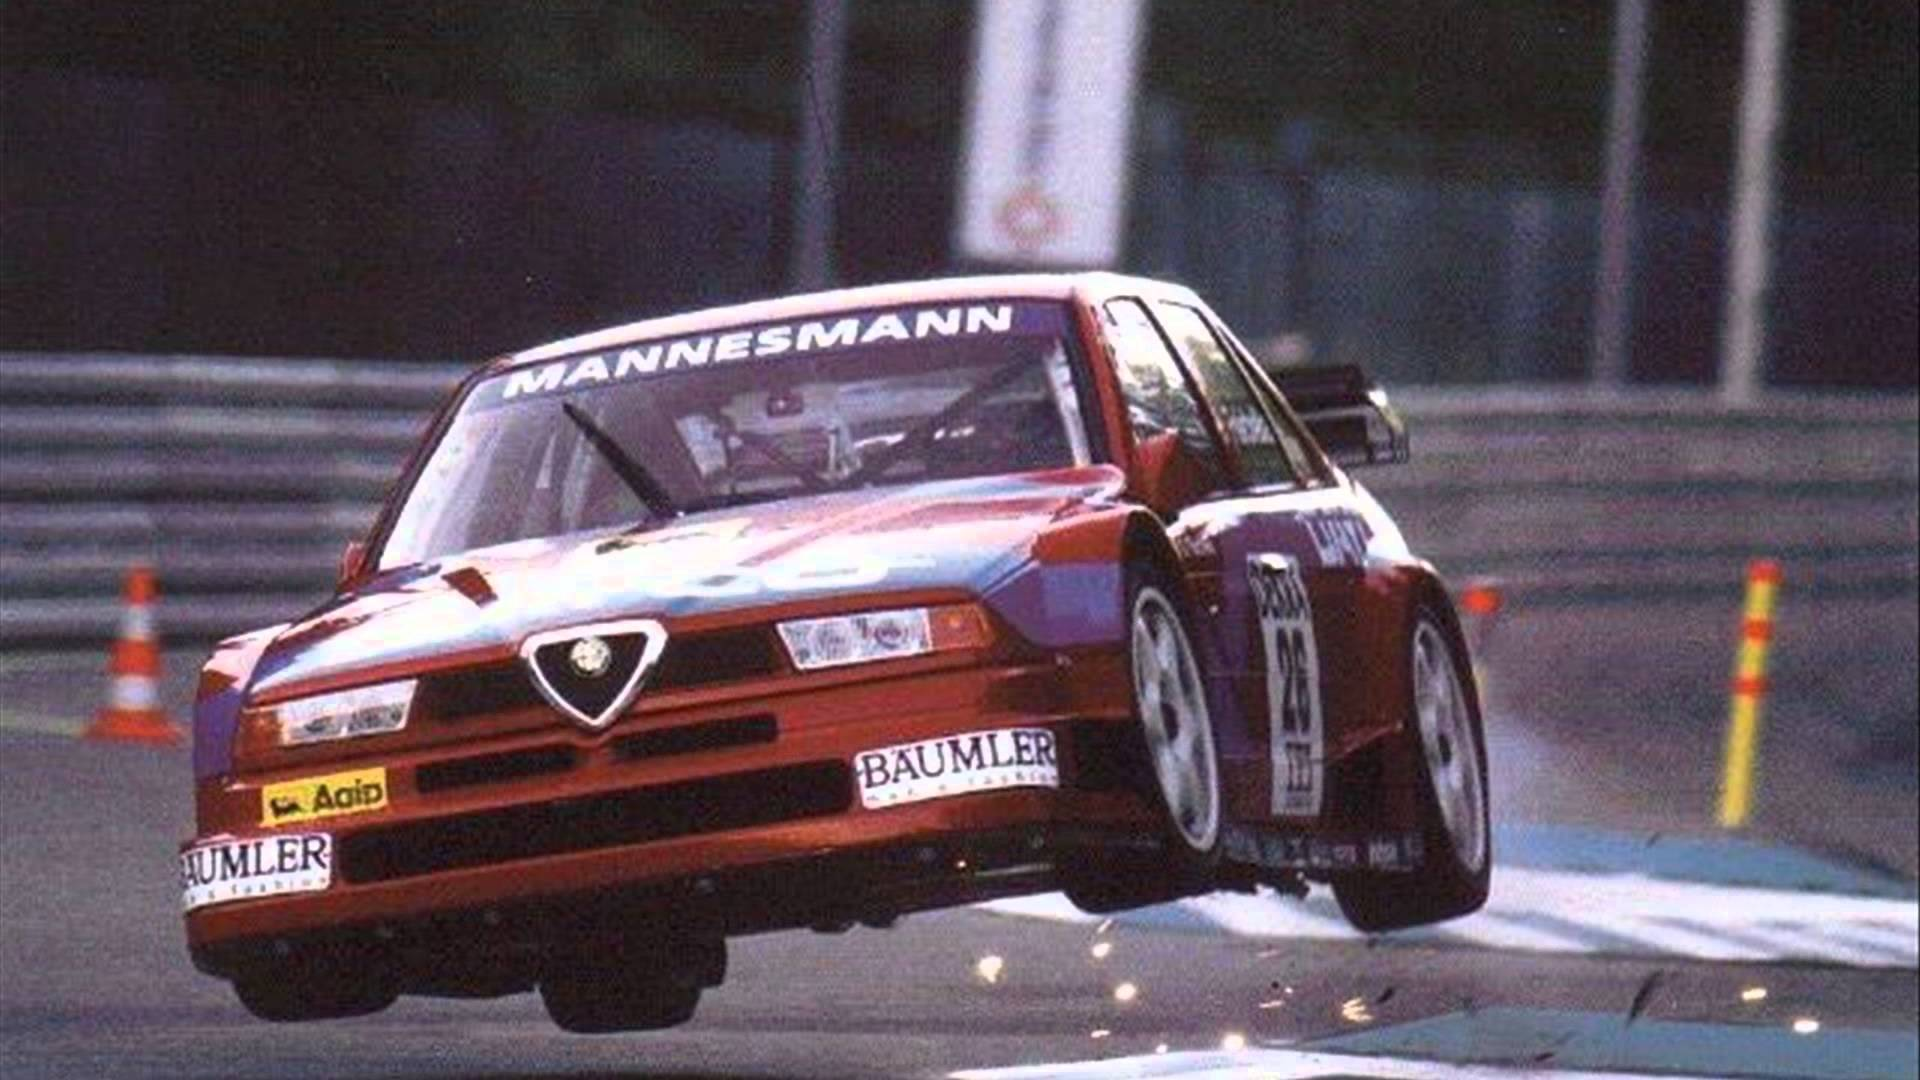 Alfa-Romeo-V-TI-goes-airborne-after-striking-the-kerb-during-a-DTM-race-1920x1080-Need-iPhon-wallpaper-wp3402249